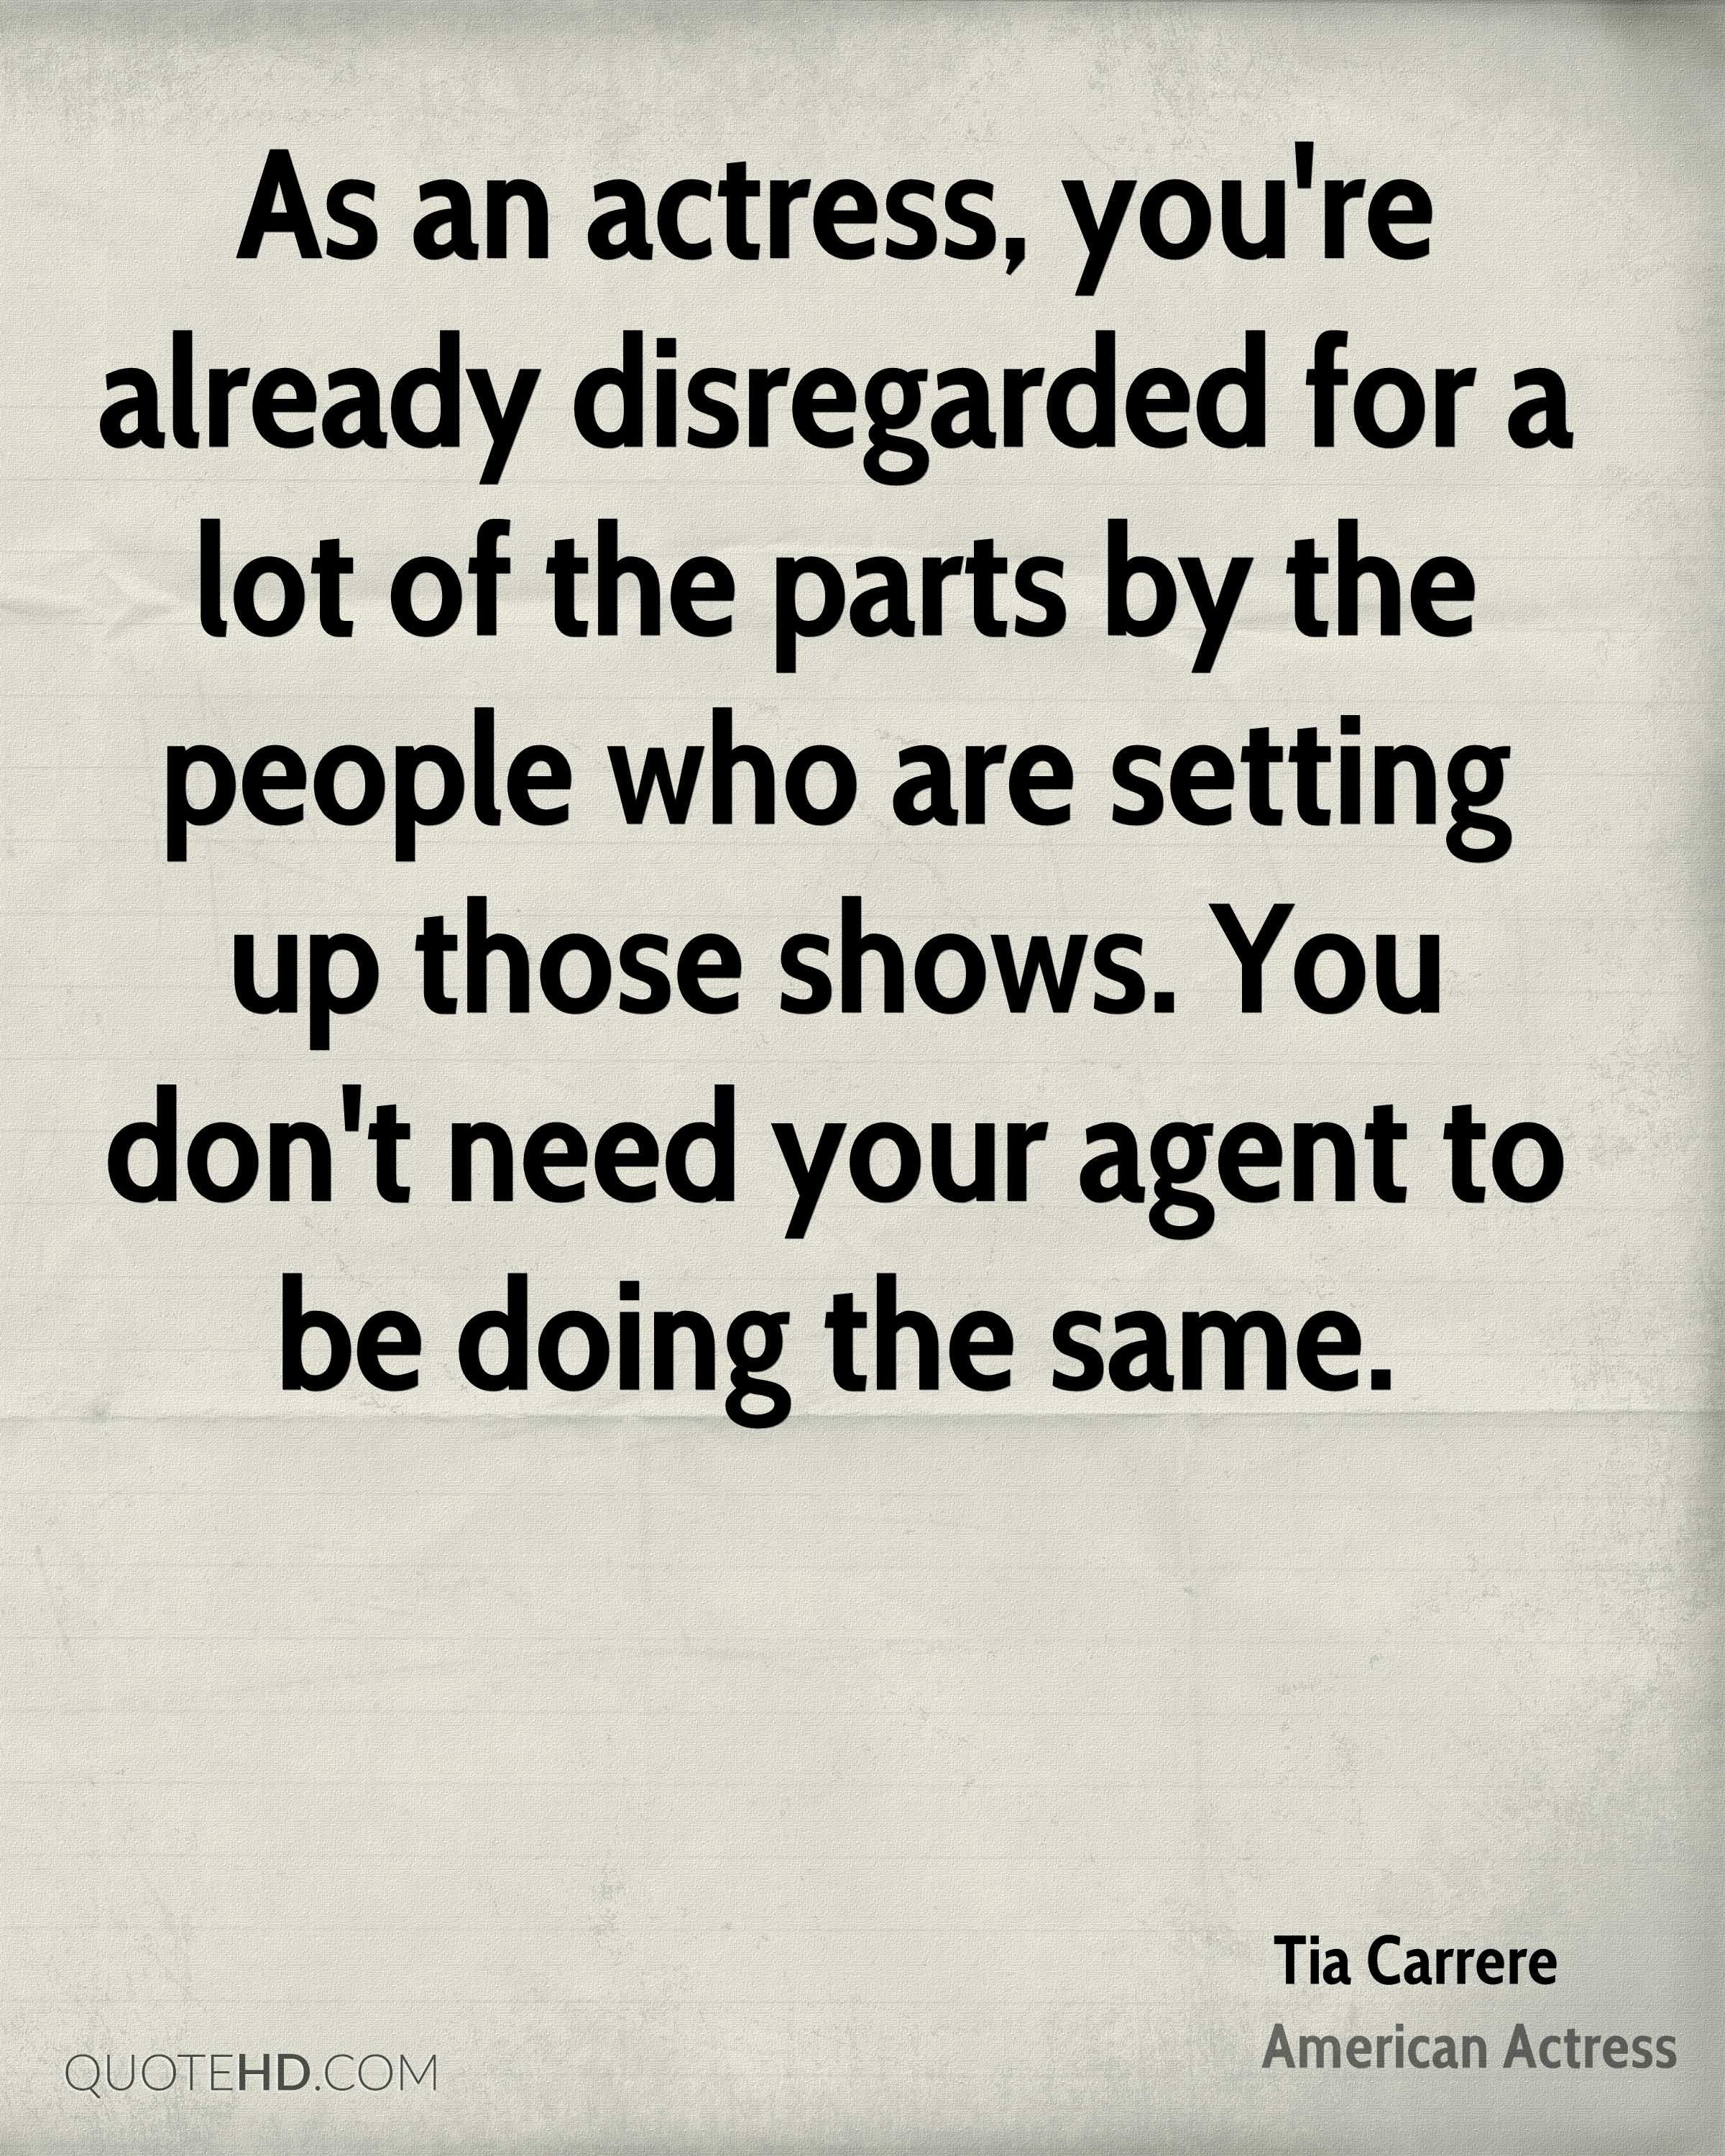 As an actress, you're already disregarded for a lot of the parts by the people who are setting up those shows. You don't need your agent to be doing the same.